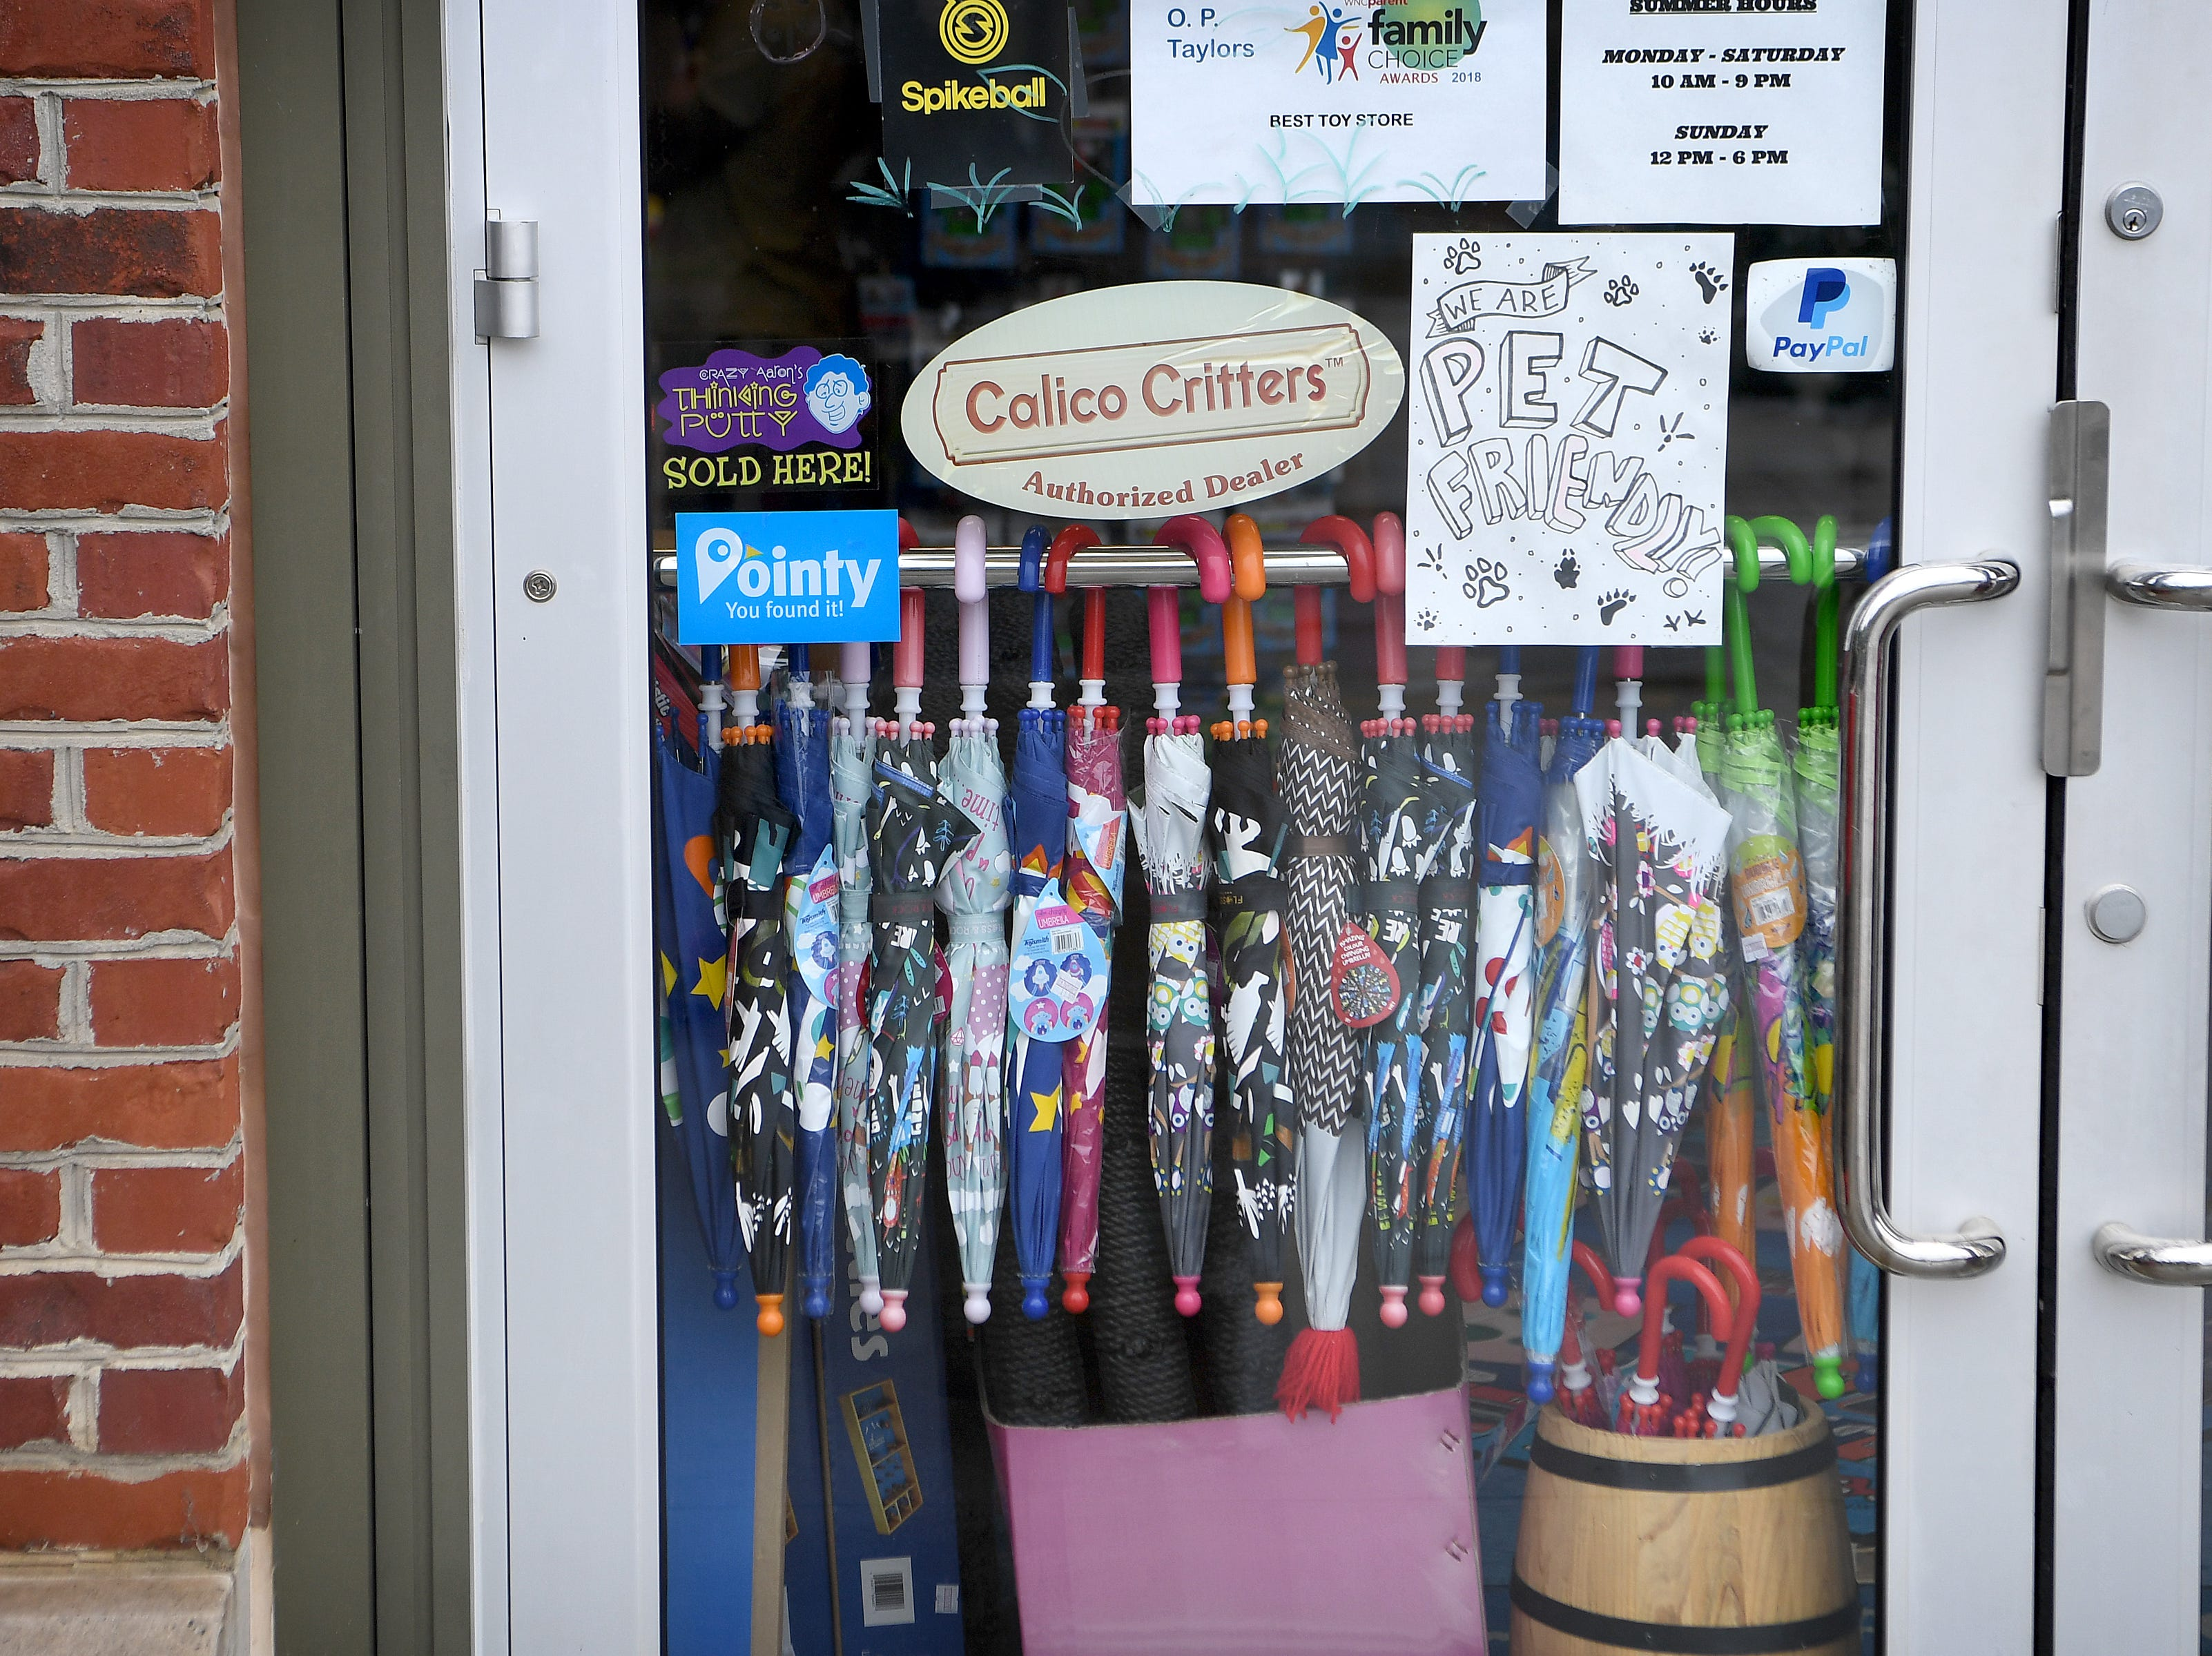 Children-sized umbrellas hang on the door of O.P. Taylor's toy store in Biltmore Park as rain caused by Hurricane Florence, now downgraded to a tropical depression, falls on the area on Sept. 16, 2018.